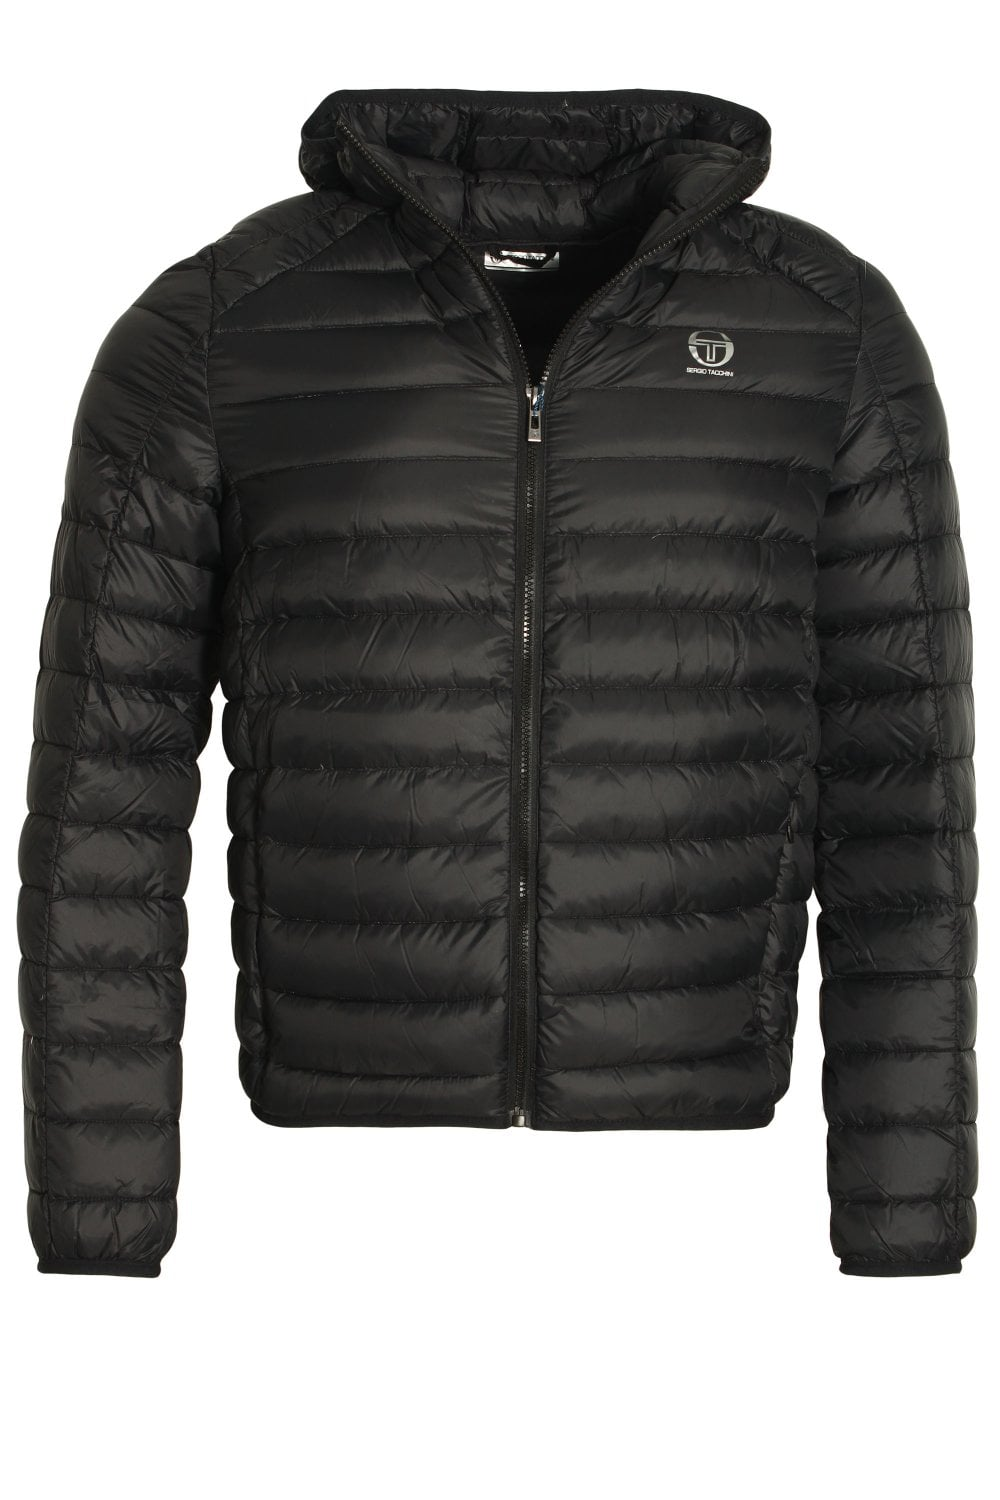 Sergio Tacchini Ives Hooded Duck Down Jacket Shop Sergio